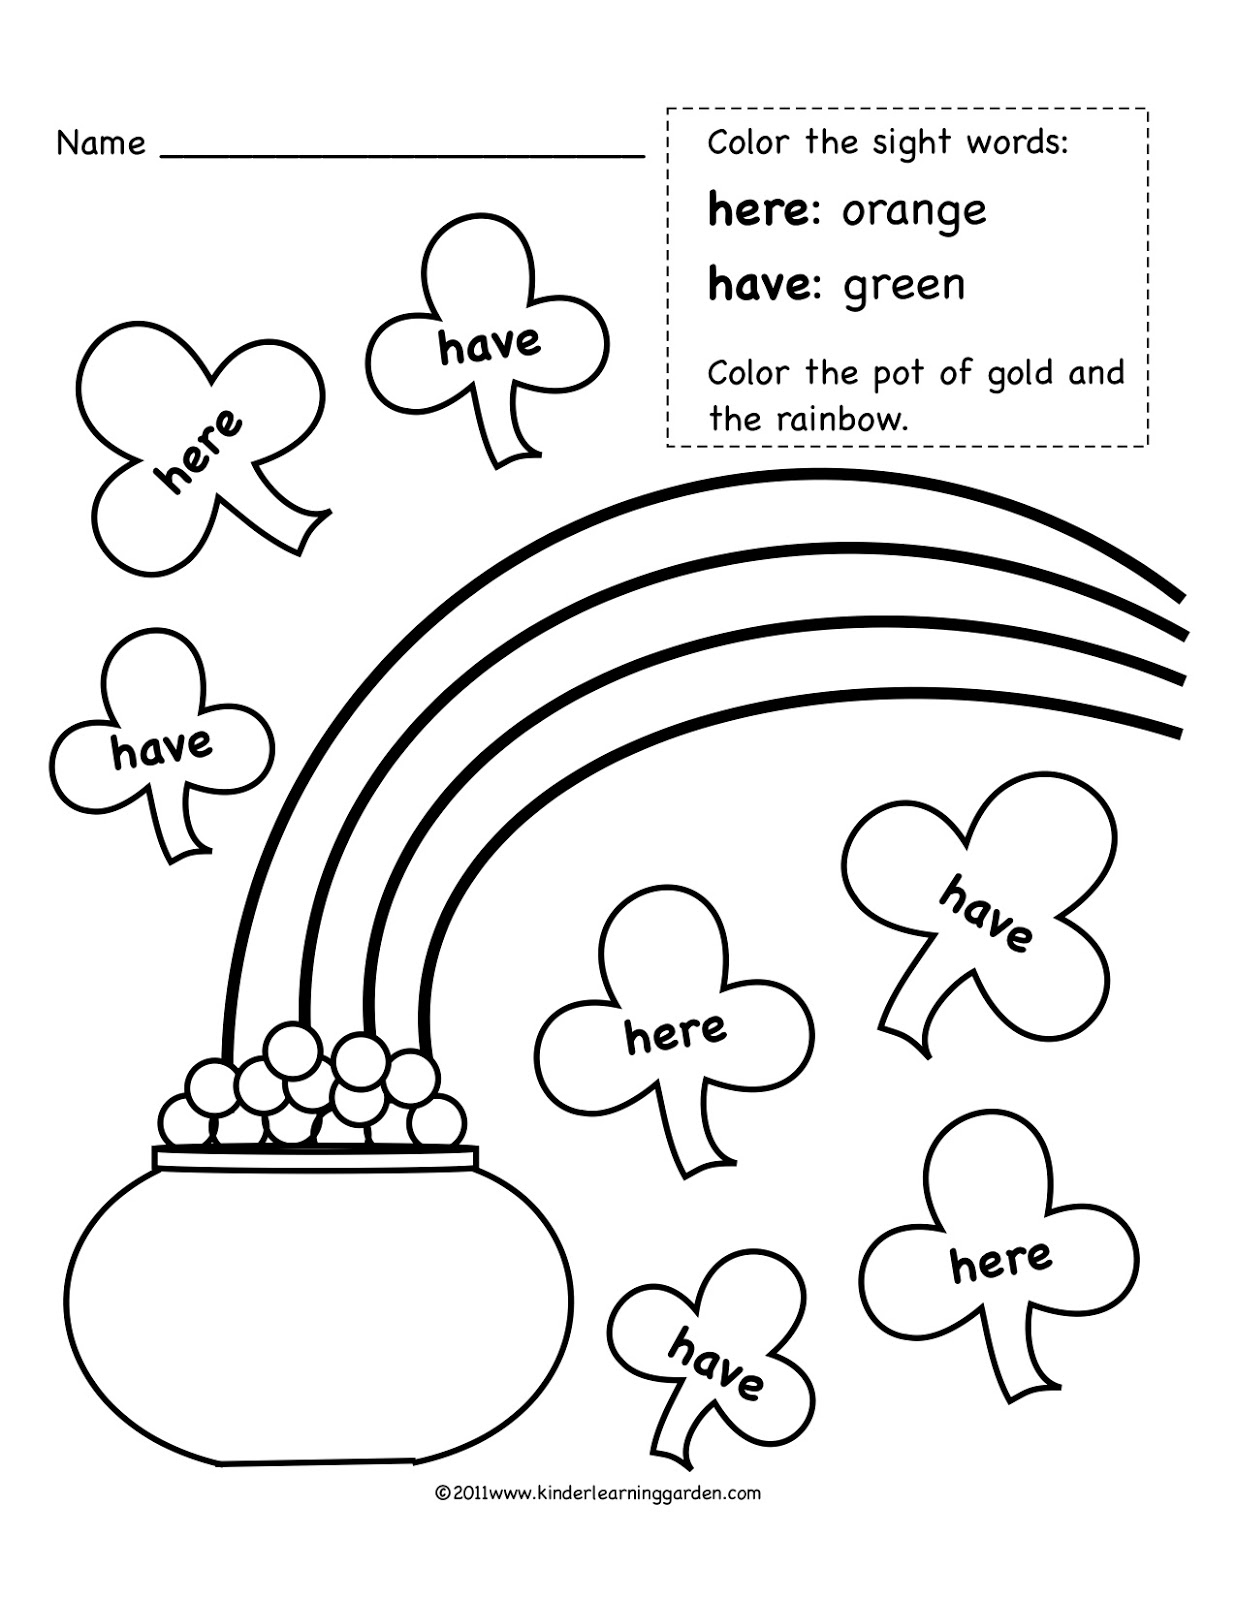 Kinder Learning Garden March Sight Words Freebie Sight Word Coloring Pages Kindergarten